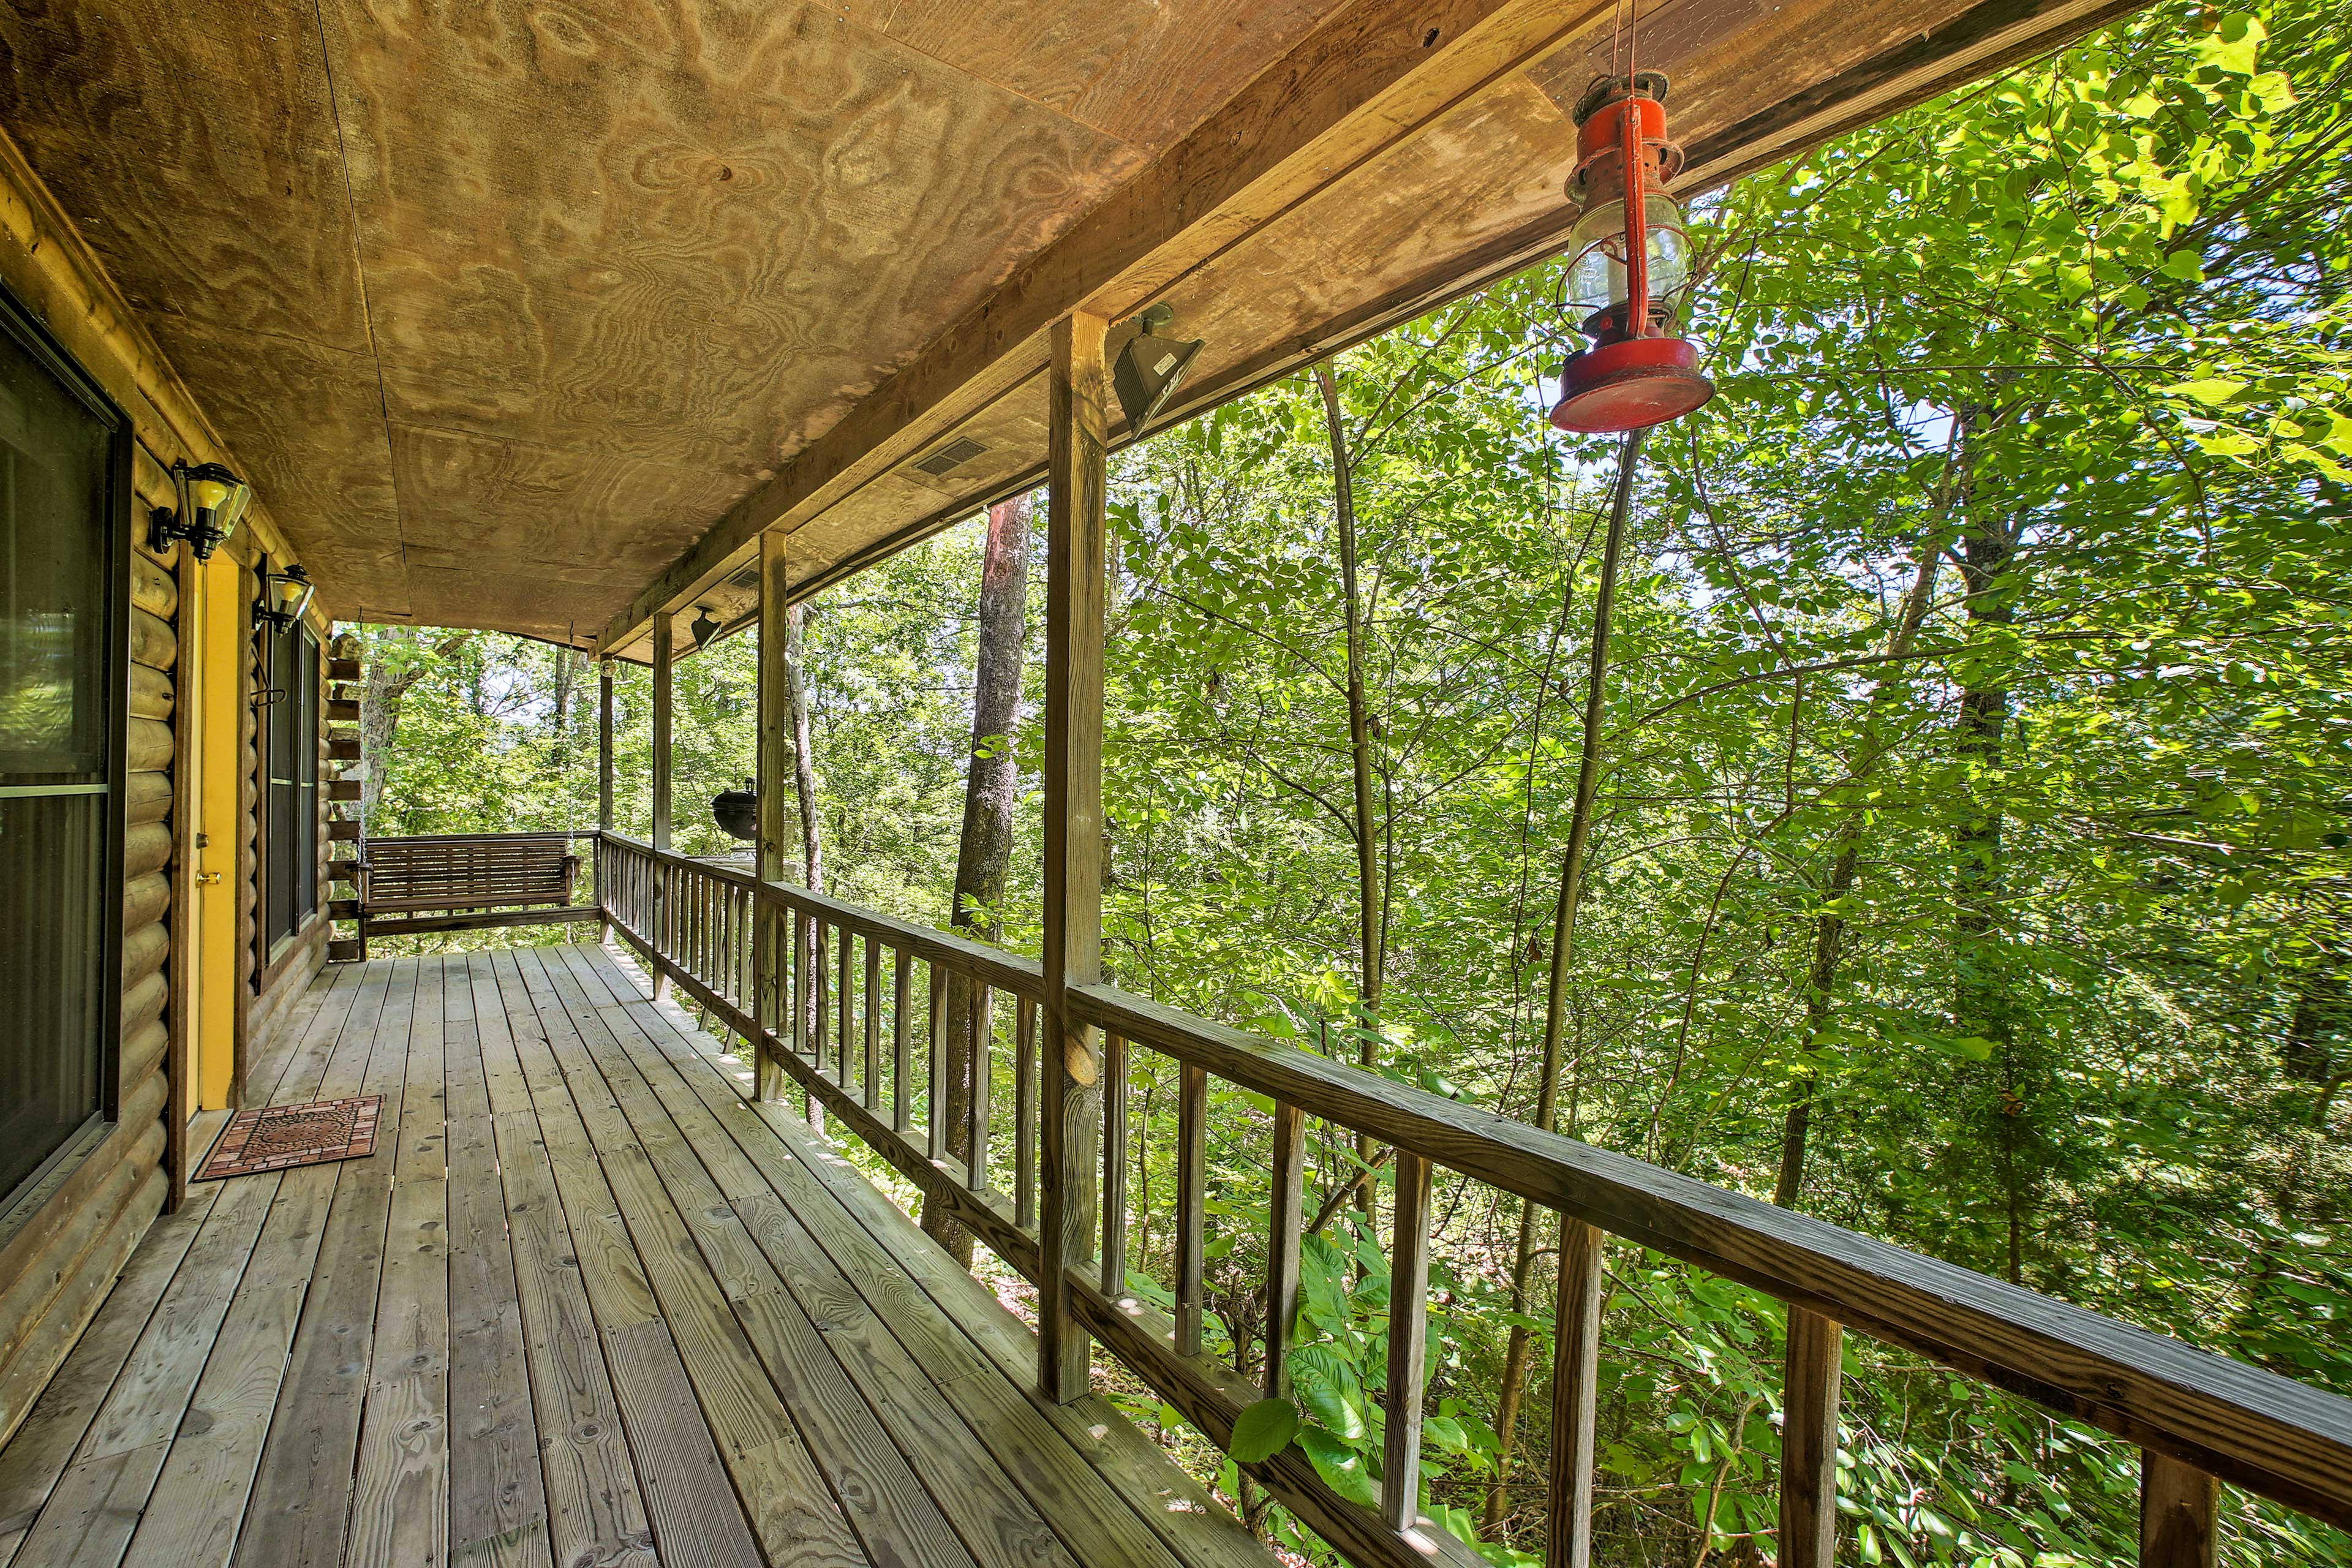 Take in the sounds of nature and forested views from the deck.